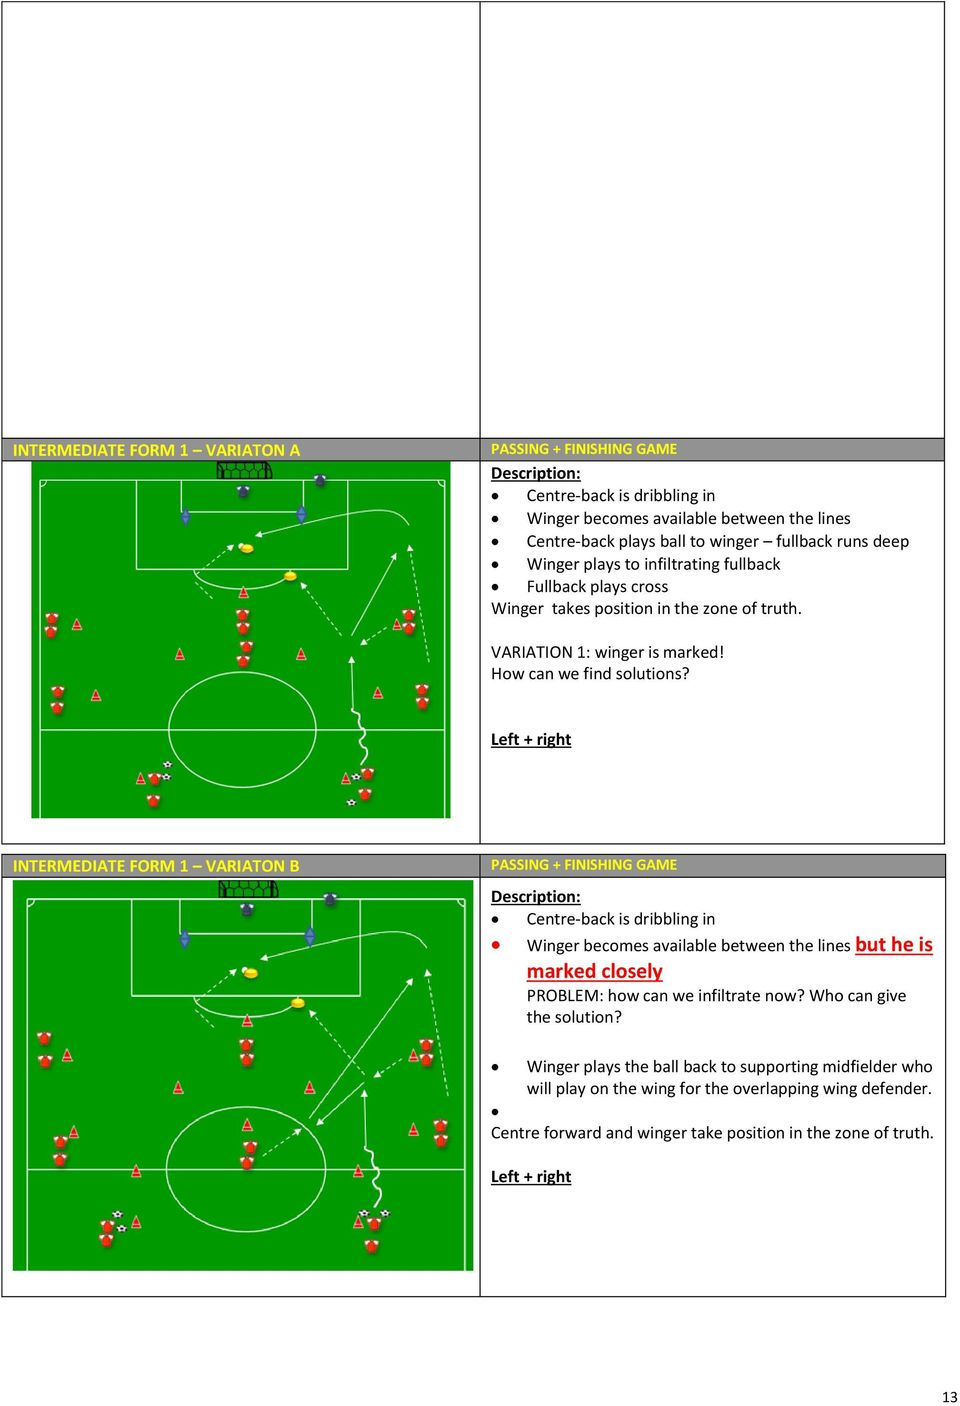 Left + right INTERMEDIATE FORM 1 VARIATON B PASSING + FINISHING GAME Description: Centre-back is dribbling in Winger becomes available between the lines but he is marked closely PROBLEM: how can